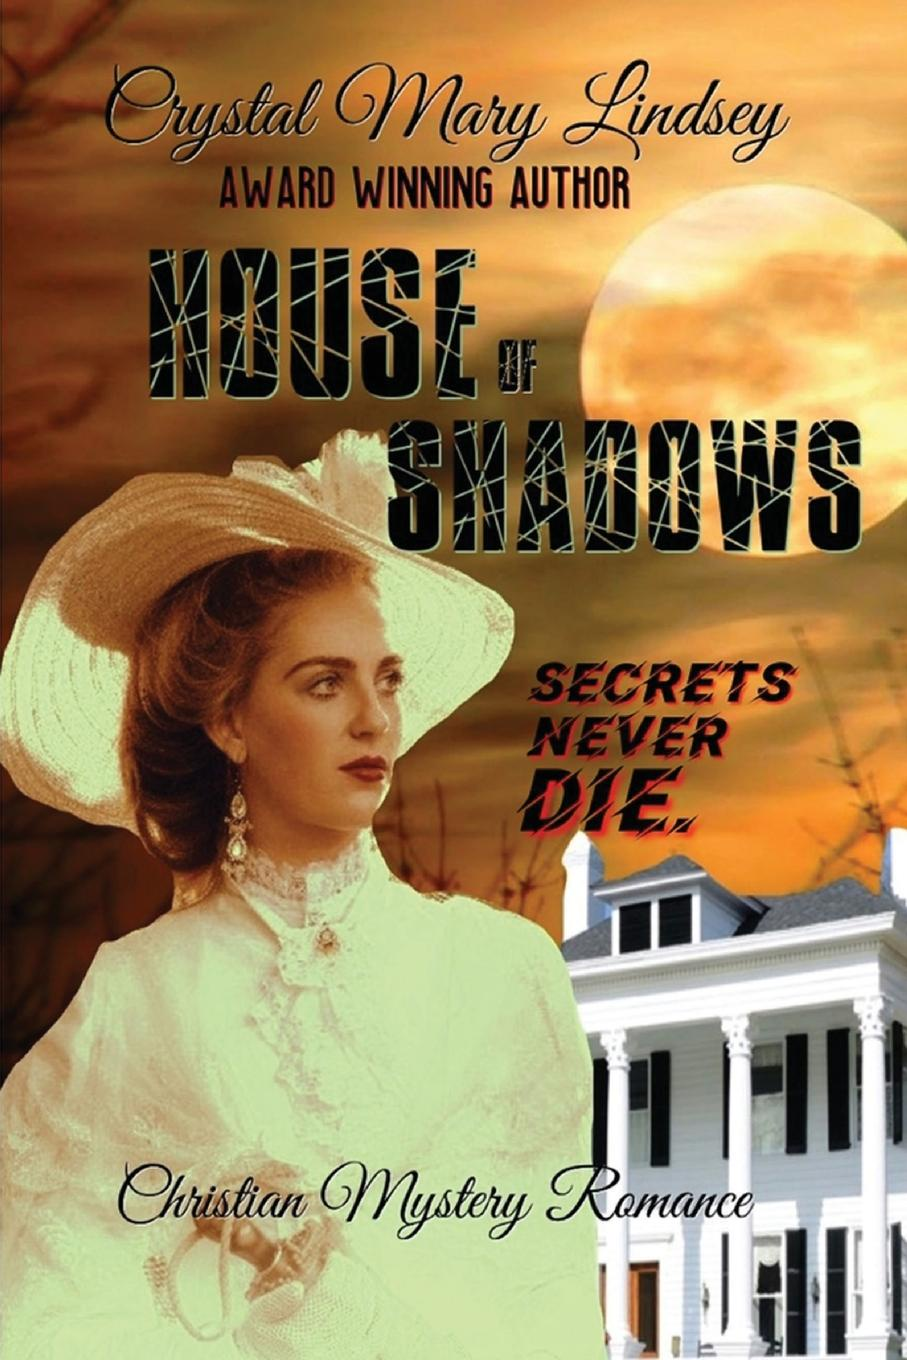 Crystal Mary Lindsey HOUSE of SHADOWS. Secrets Never Die